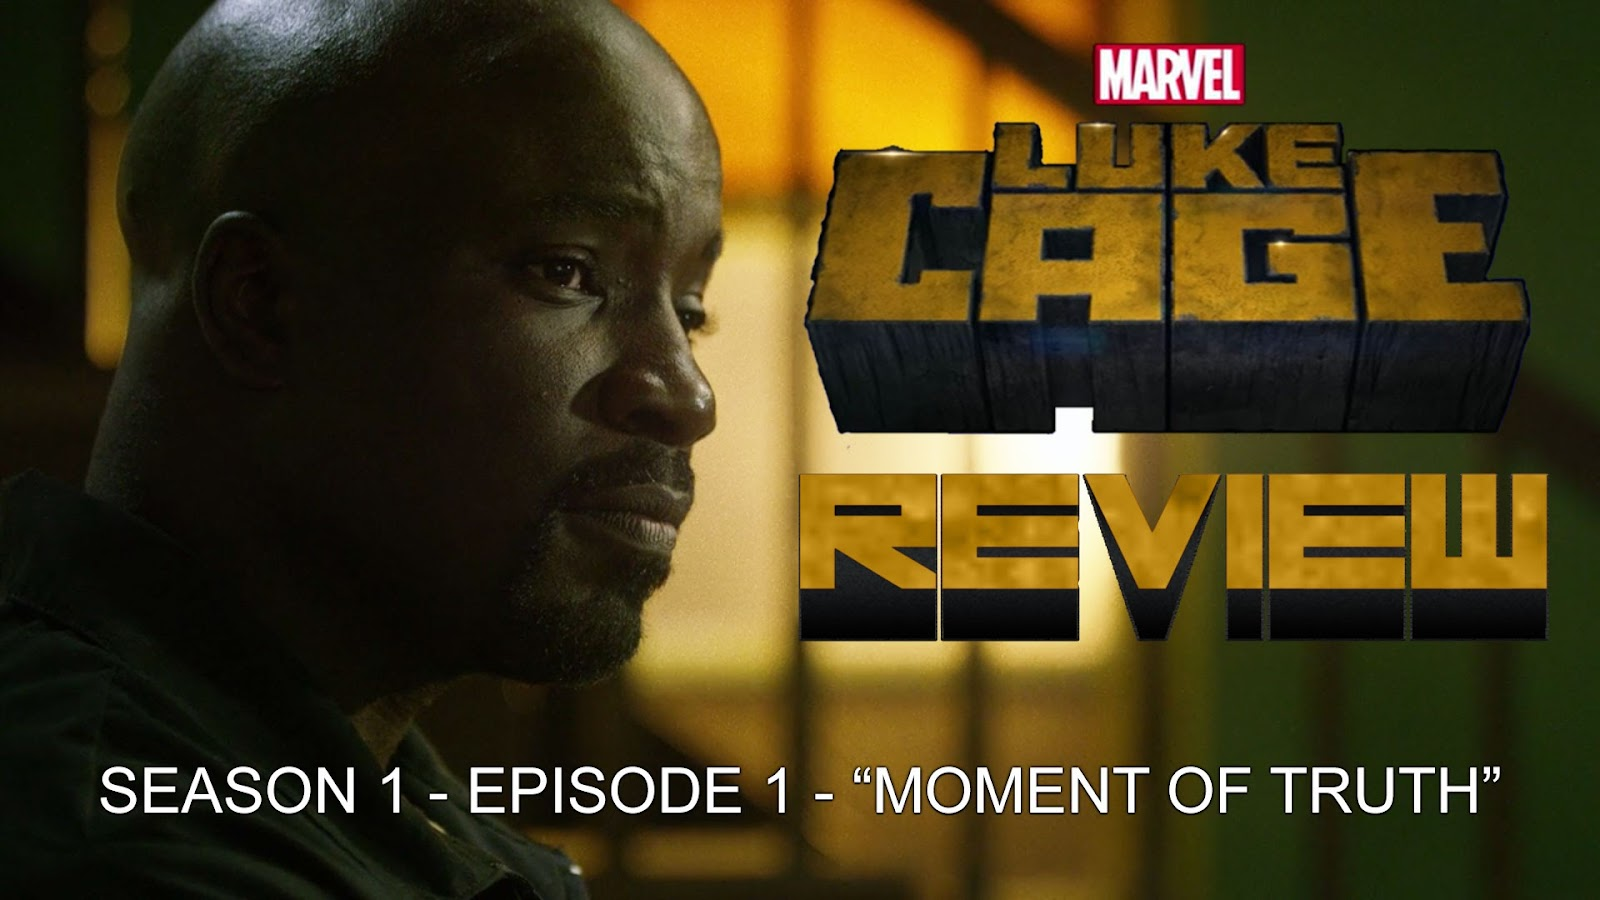 Must see Wallpaper Marvel Luke Cage - Luke-Cage-Episode-1-Season-1-Moment-of-Truth-Review  Pictures_113318.jpg